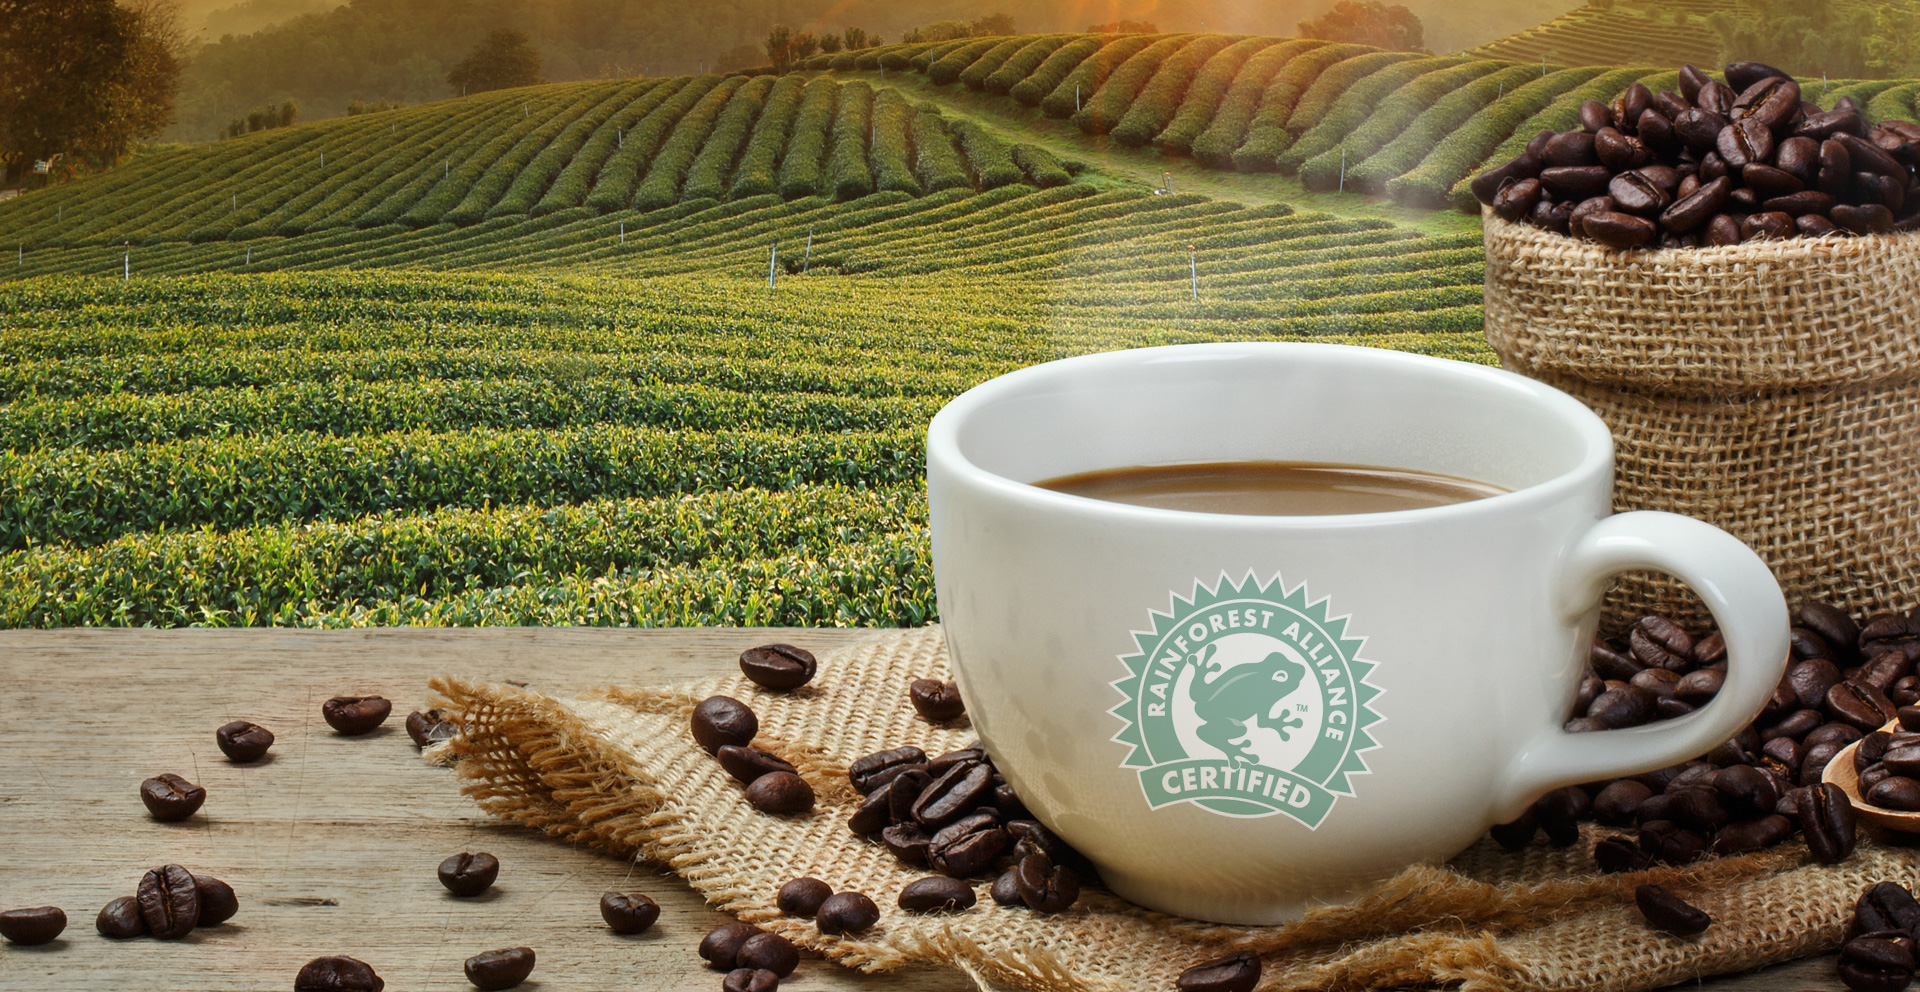 Serving an incredible cup of Premium Rainforest Alliance Certified Coffee. Better for you, better for the planet.